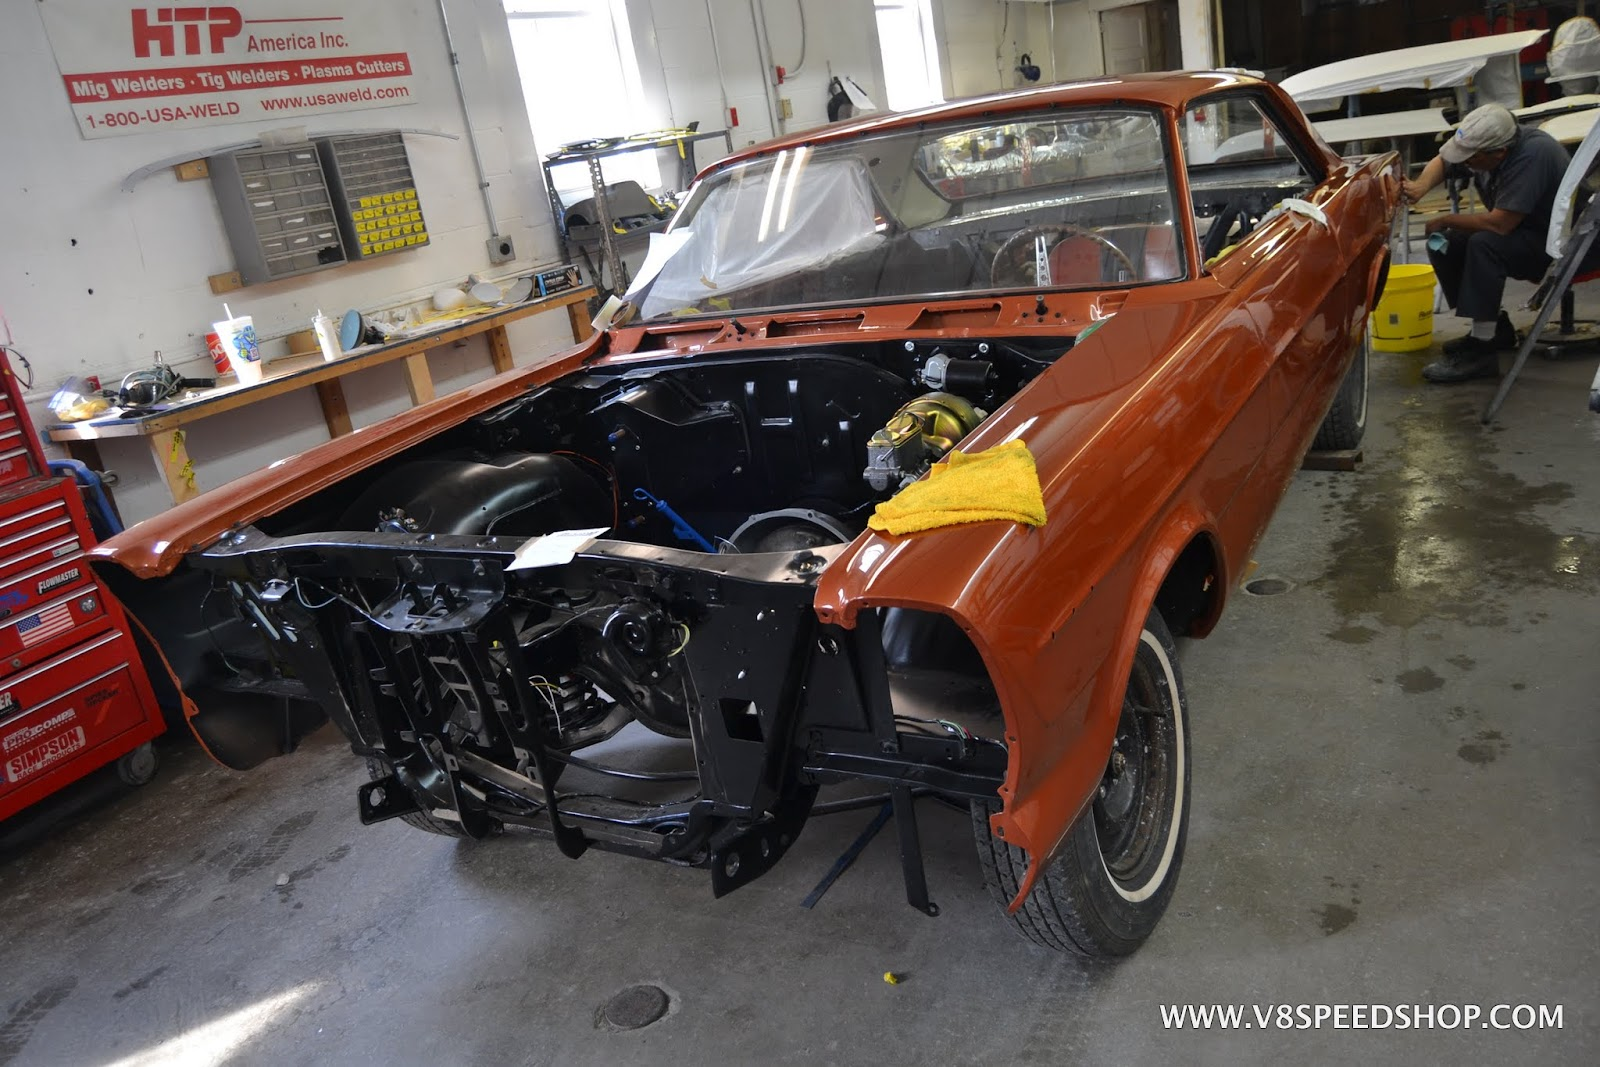 Restoration Project Car Updates In The V8 Speed & Resto Shop